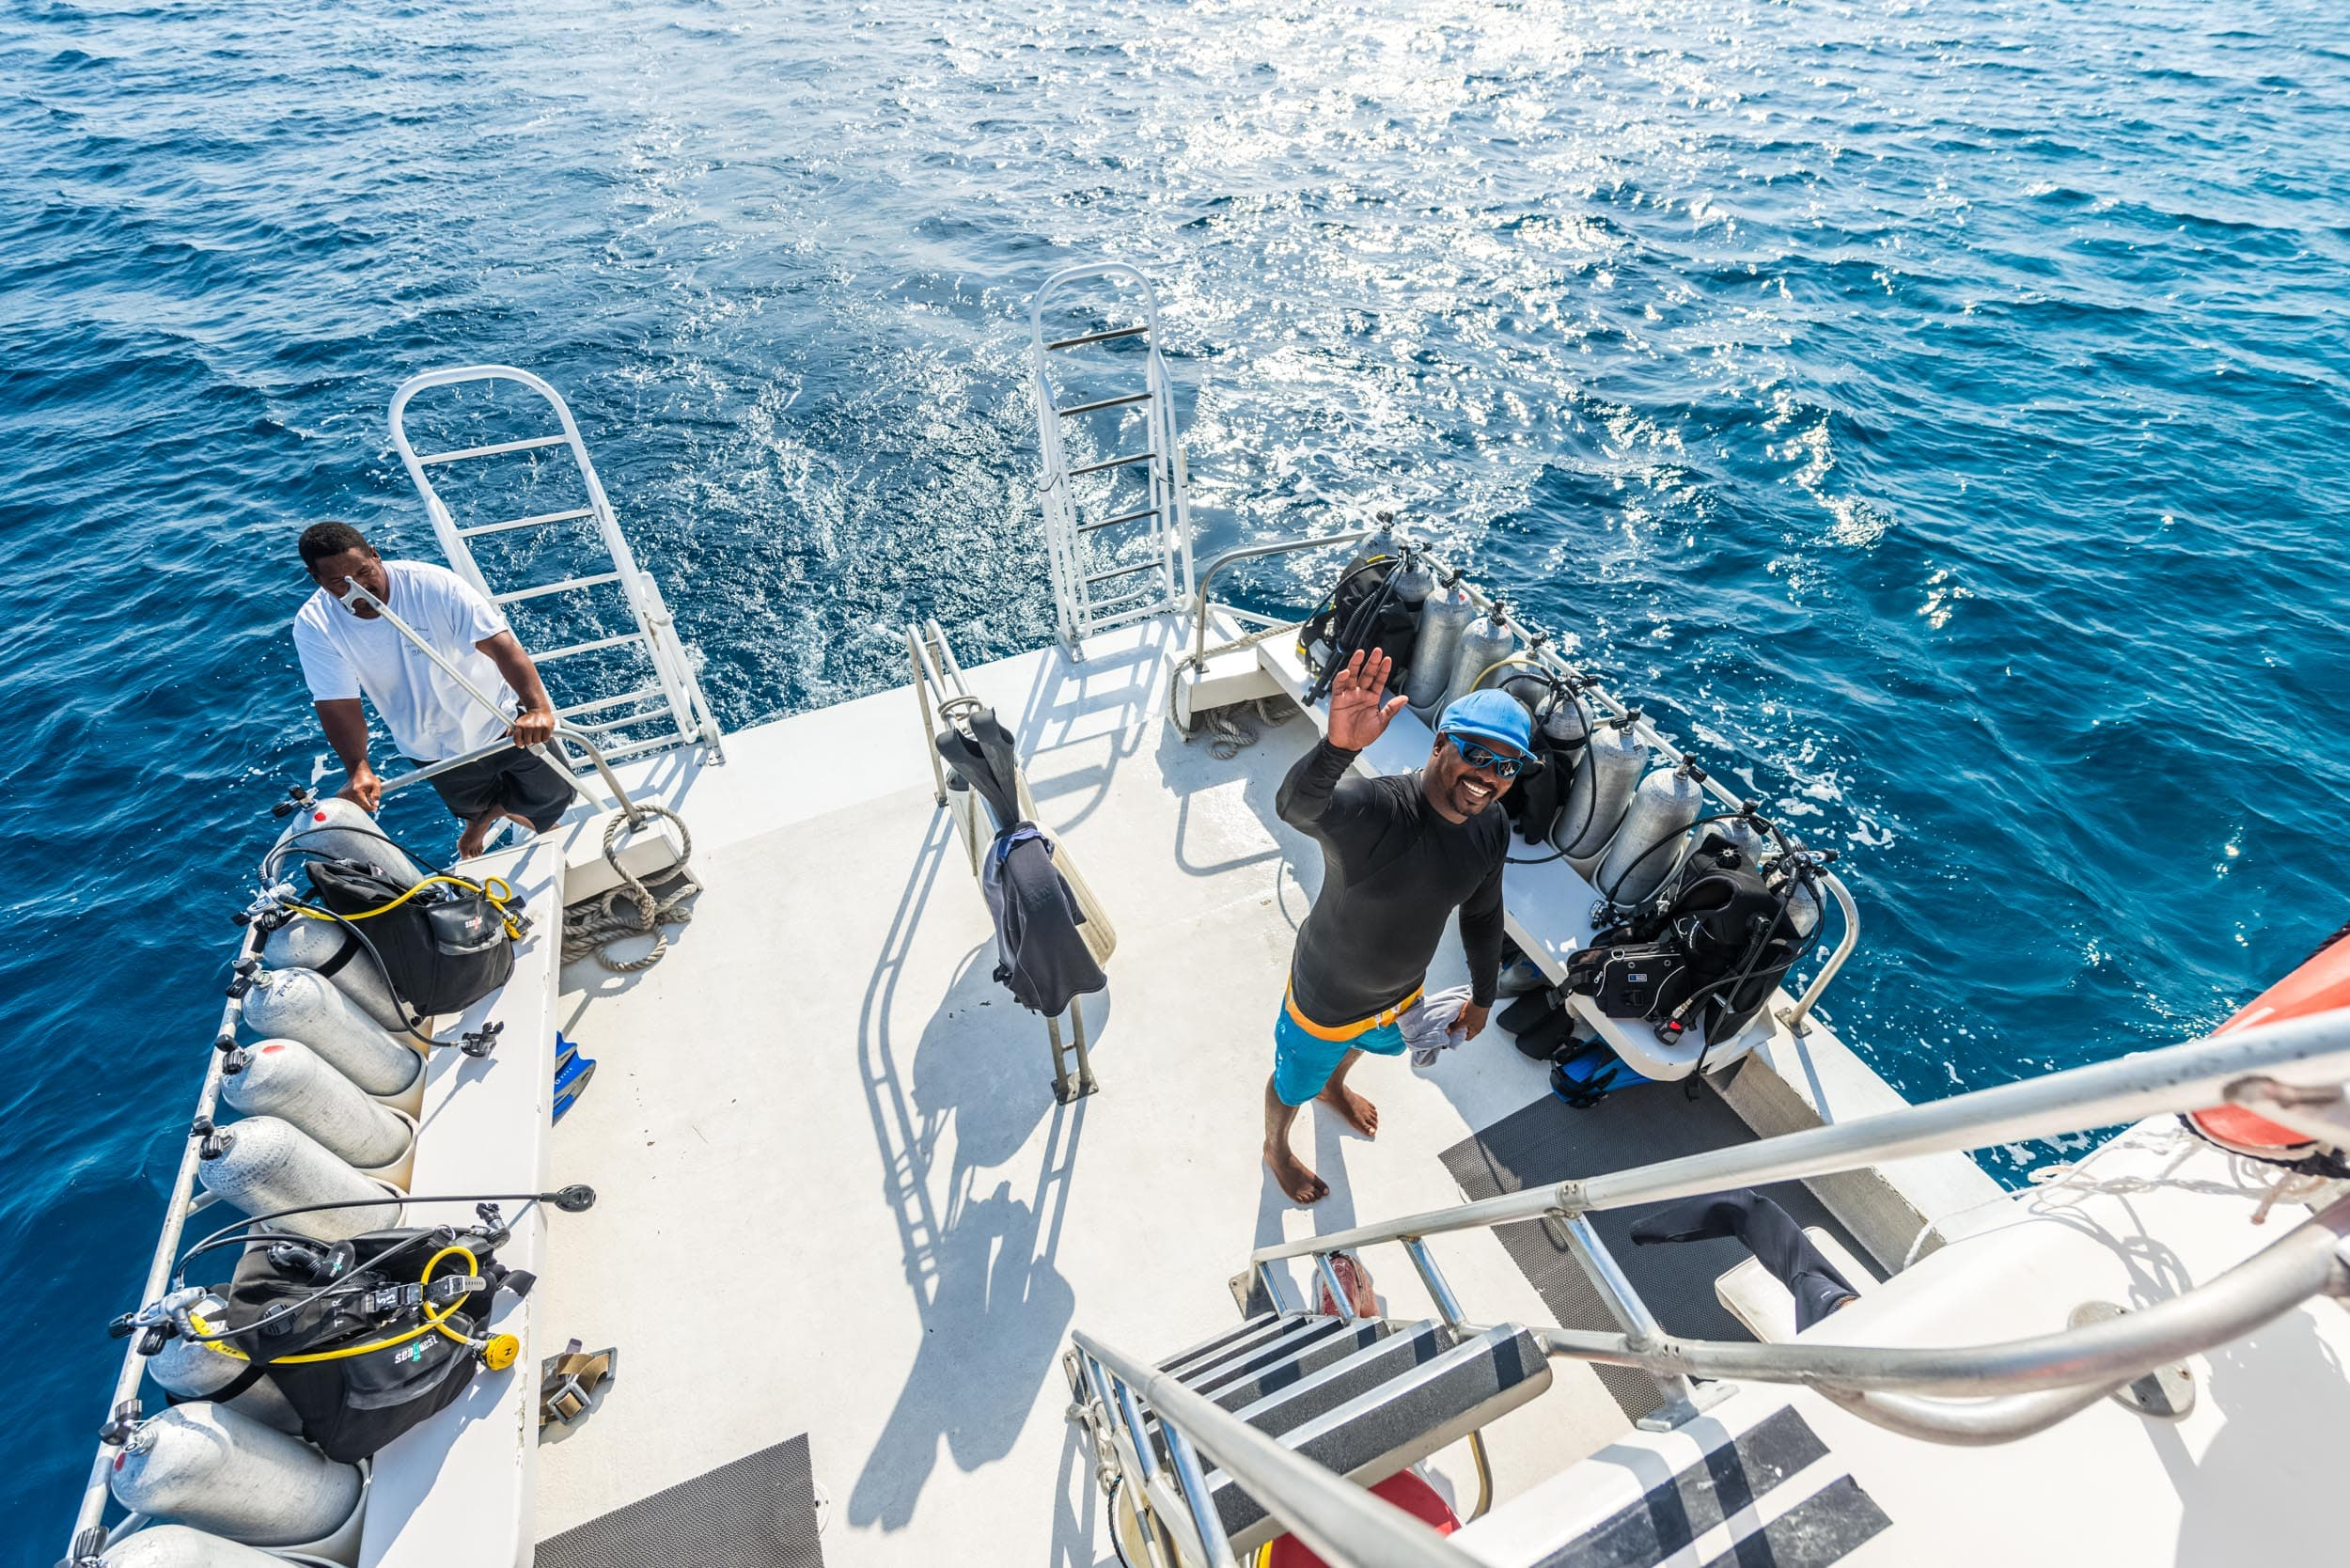 Day trips to the Blue Hole are made aboard one of the resort's two Pro 42 inboard dive boats.